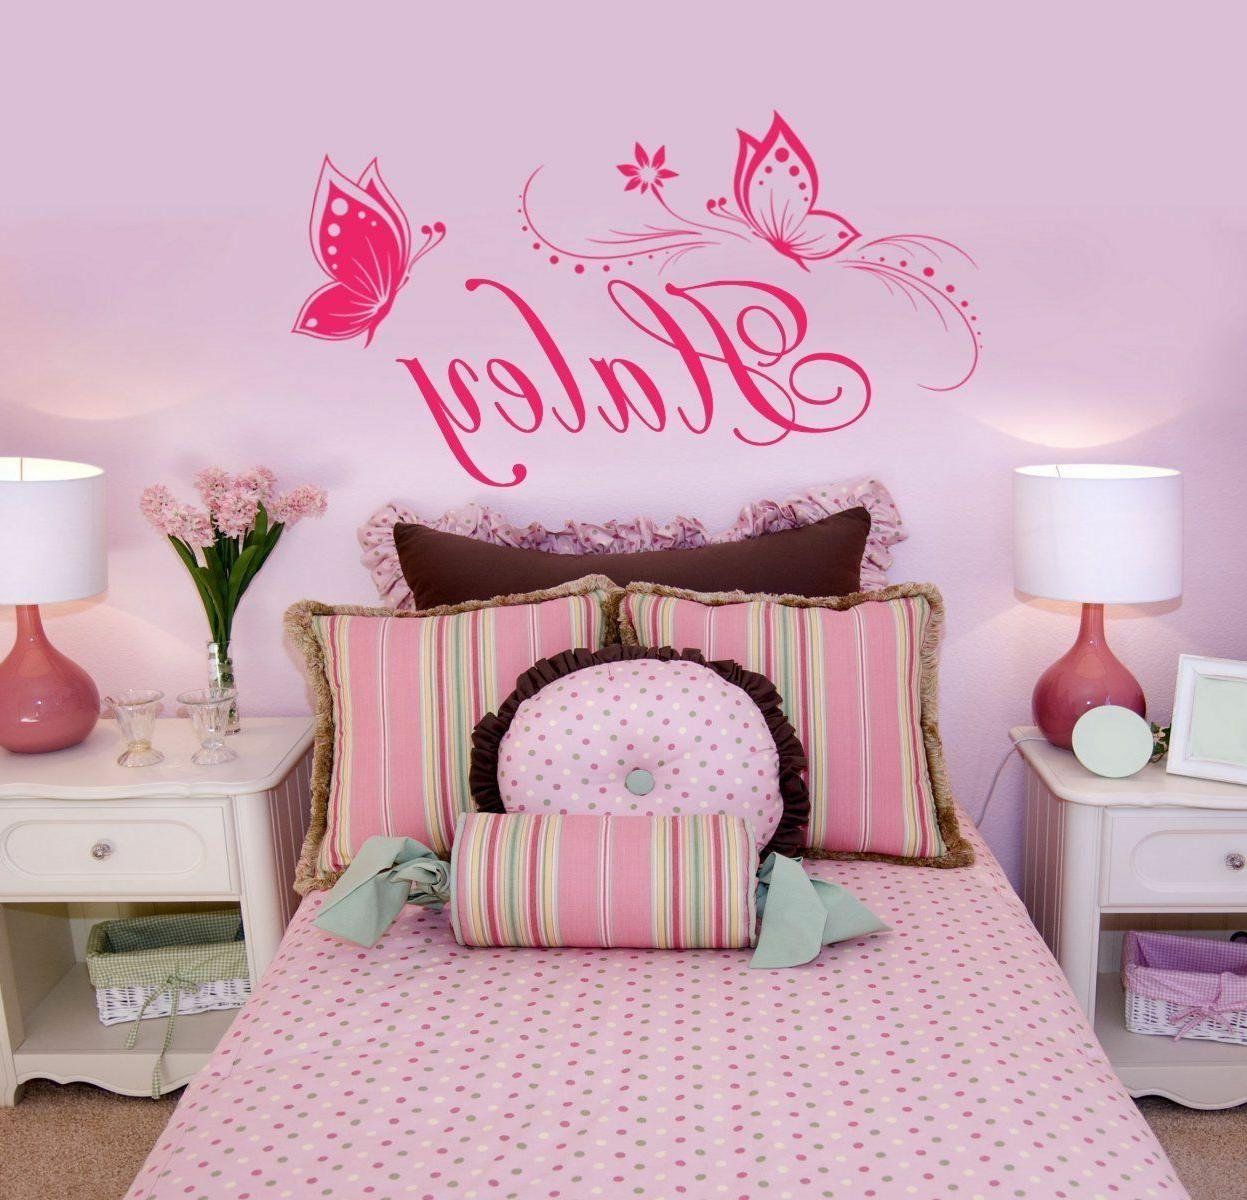 butterfly wall sticker personalized one name vinyl